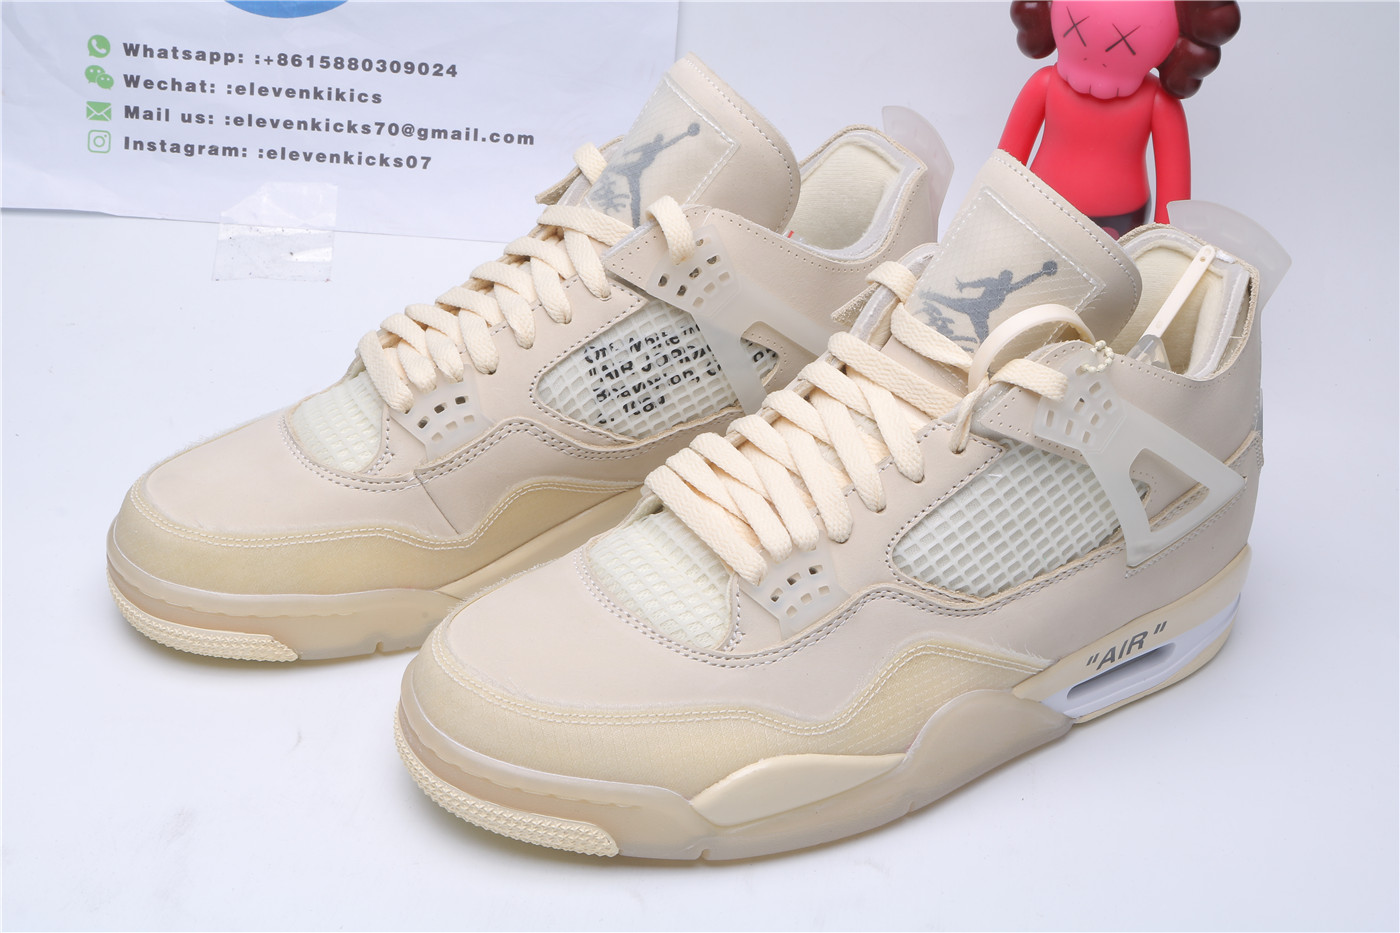 Jordan 4 Retro Off-White Sail